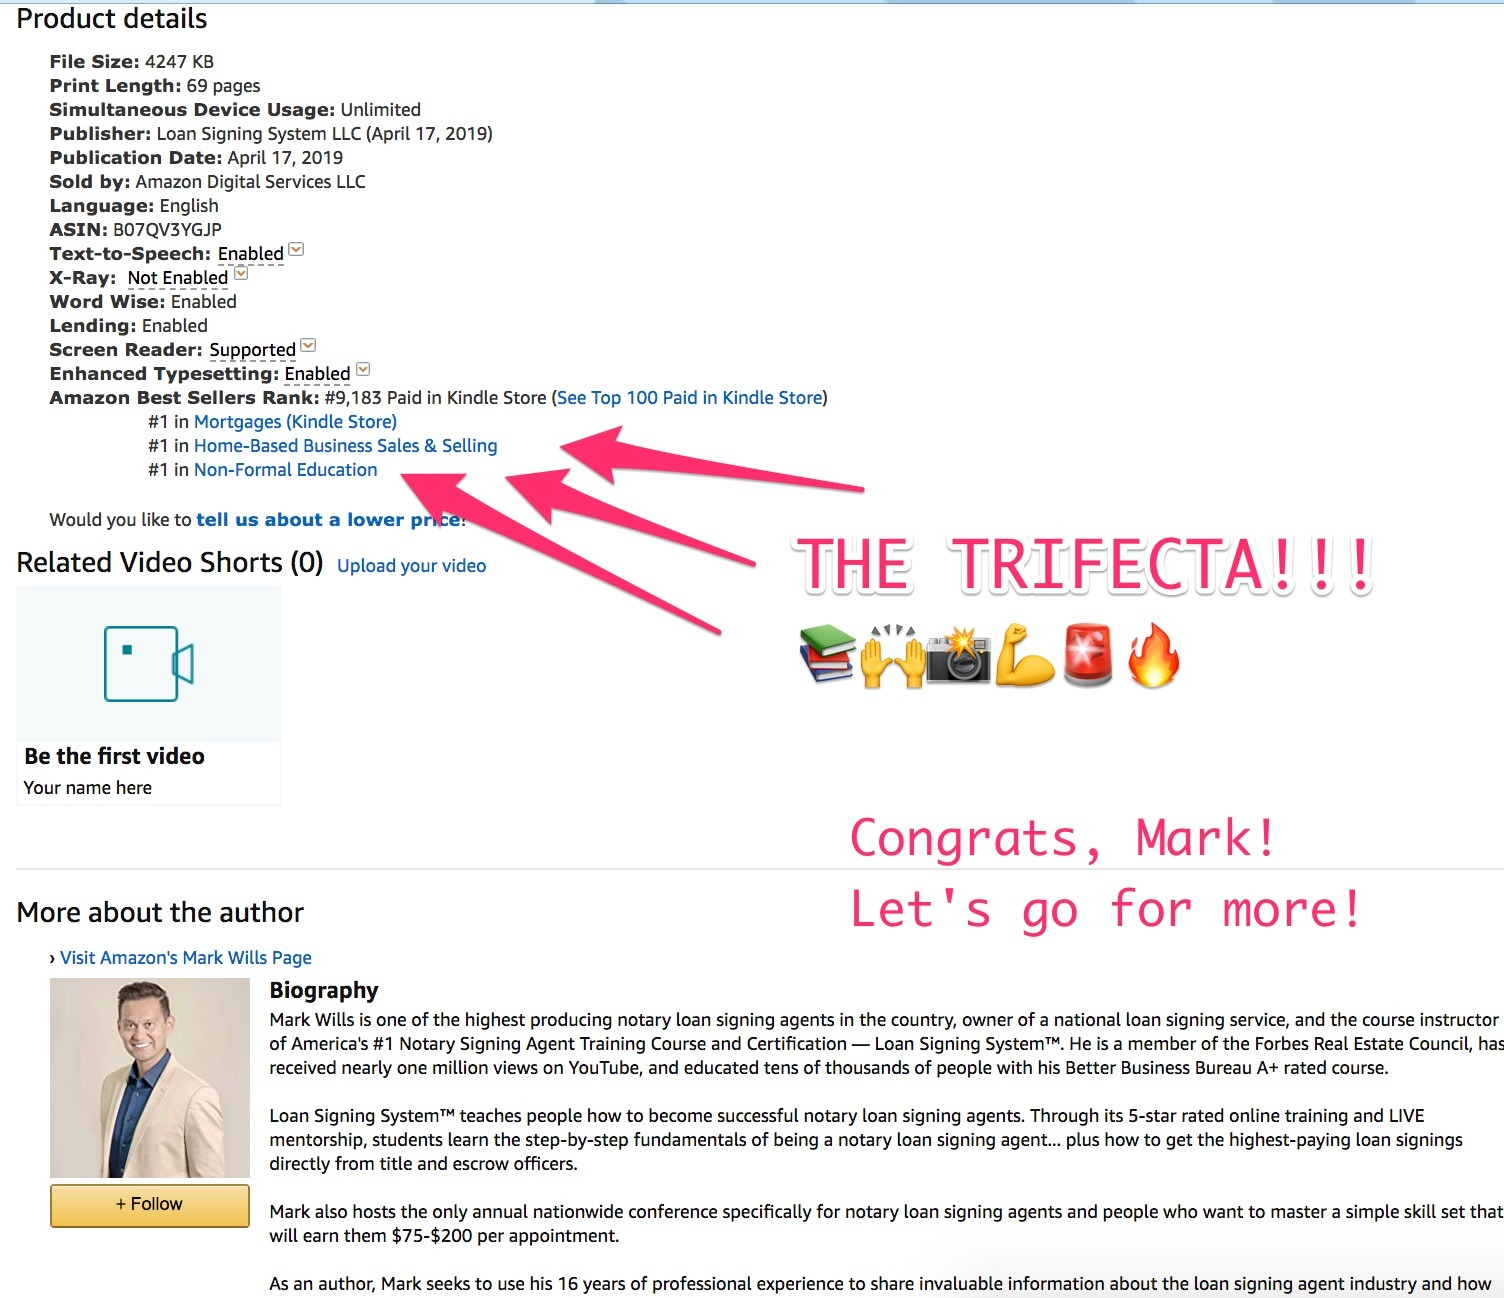 mark hit trifecta #1 bestseller - Copy That Pops